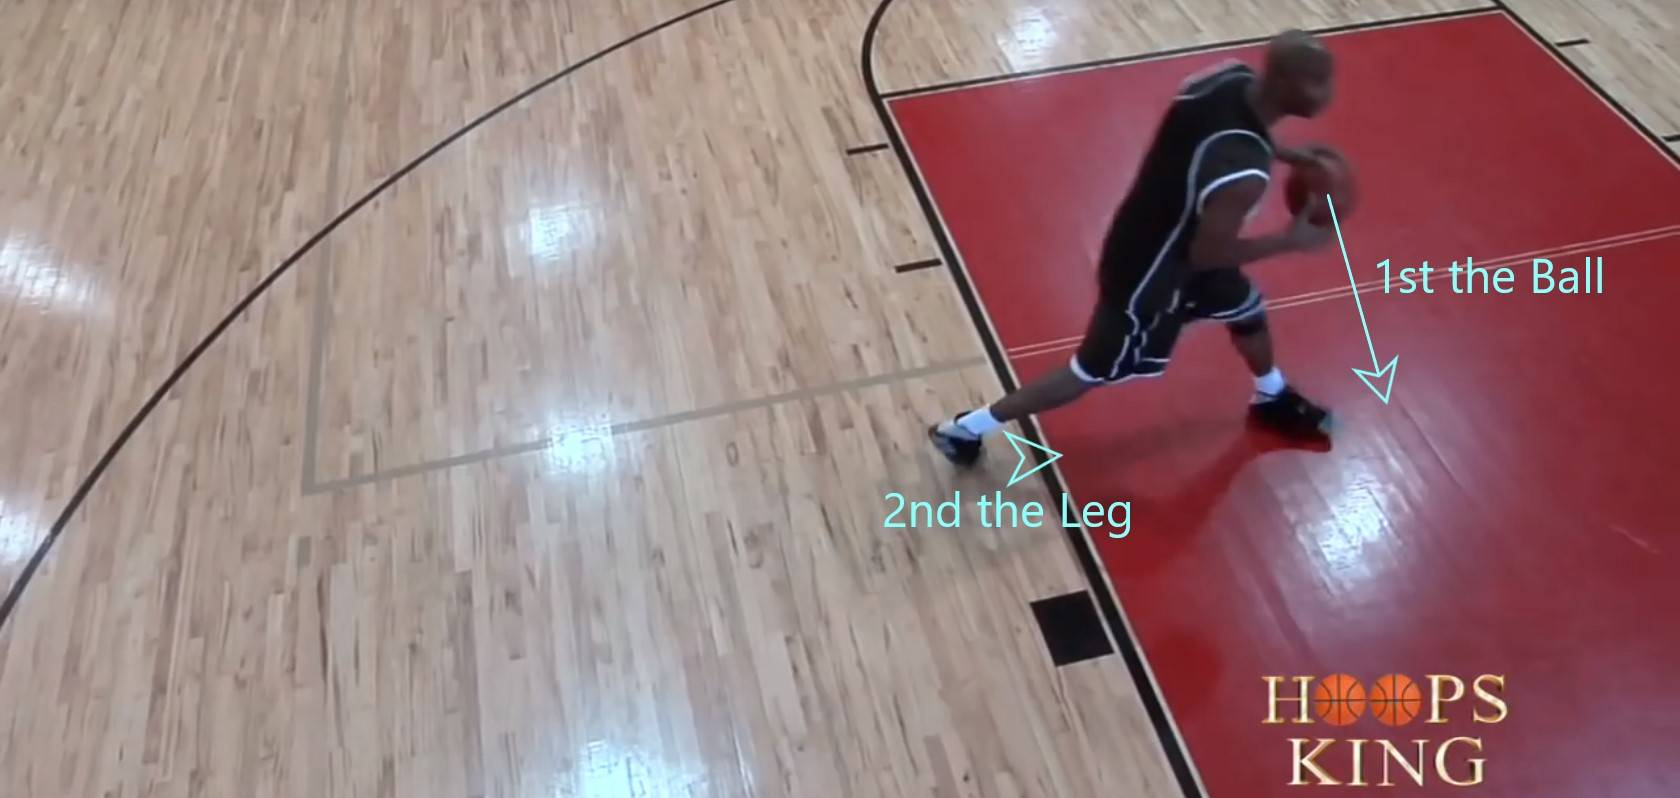 First the ball then the leg